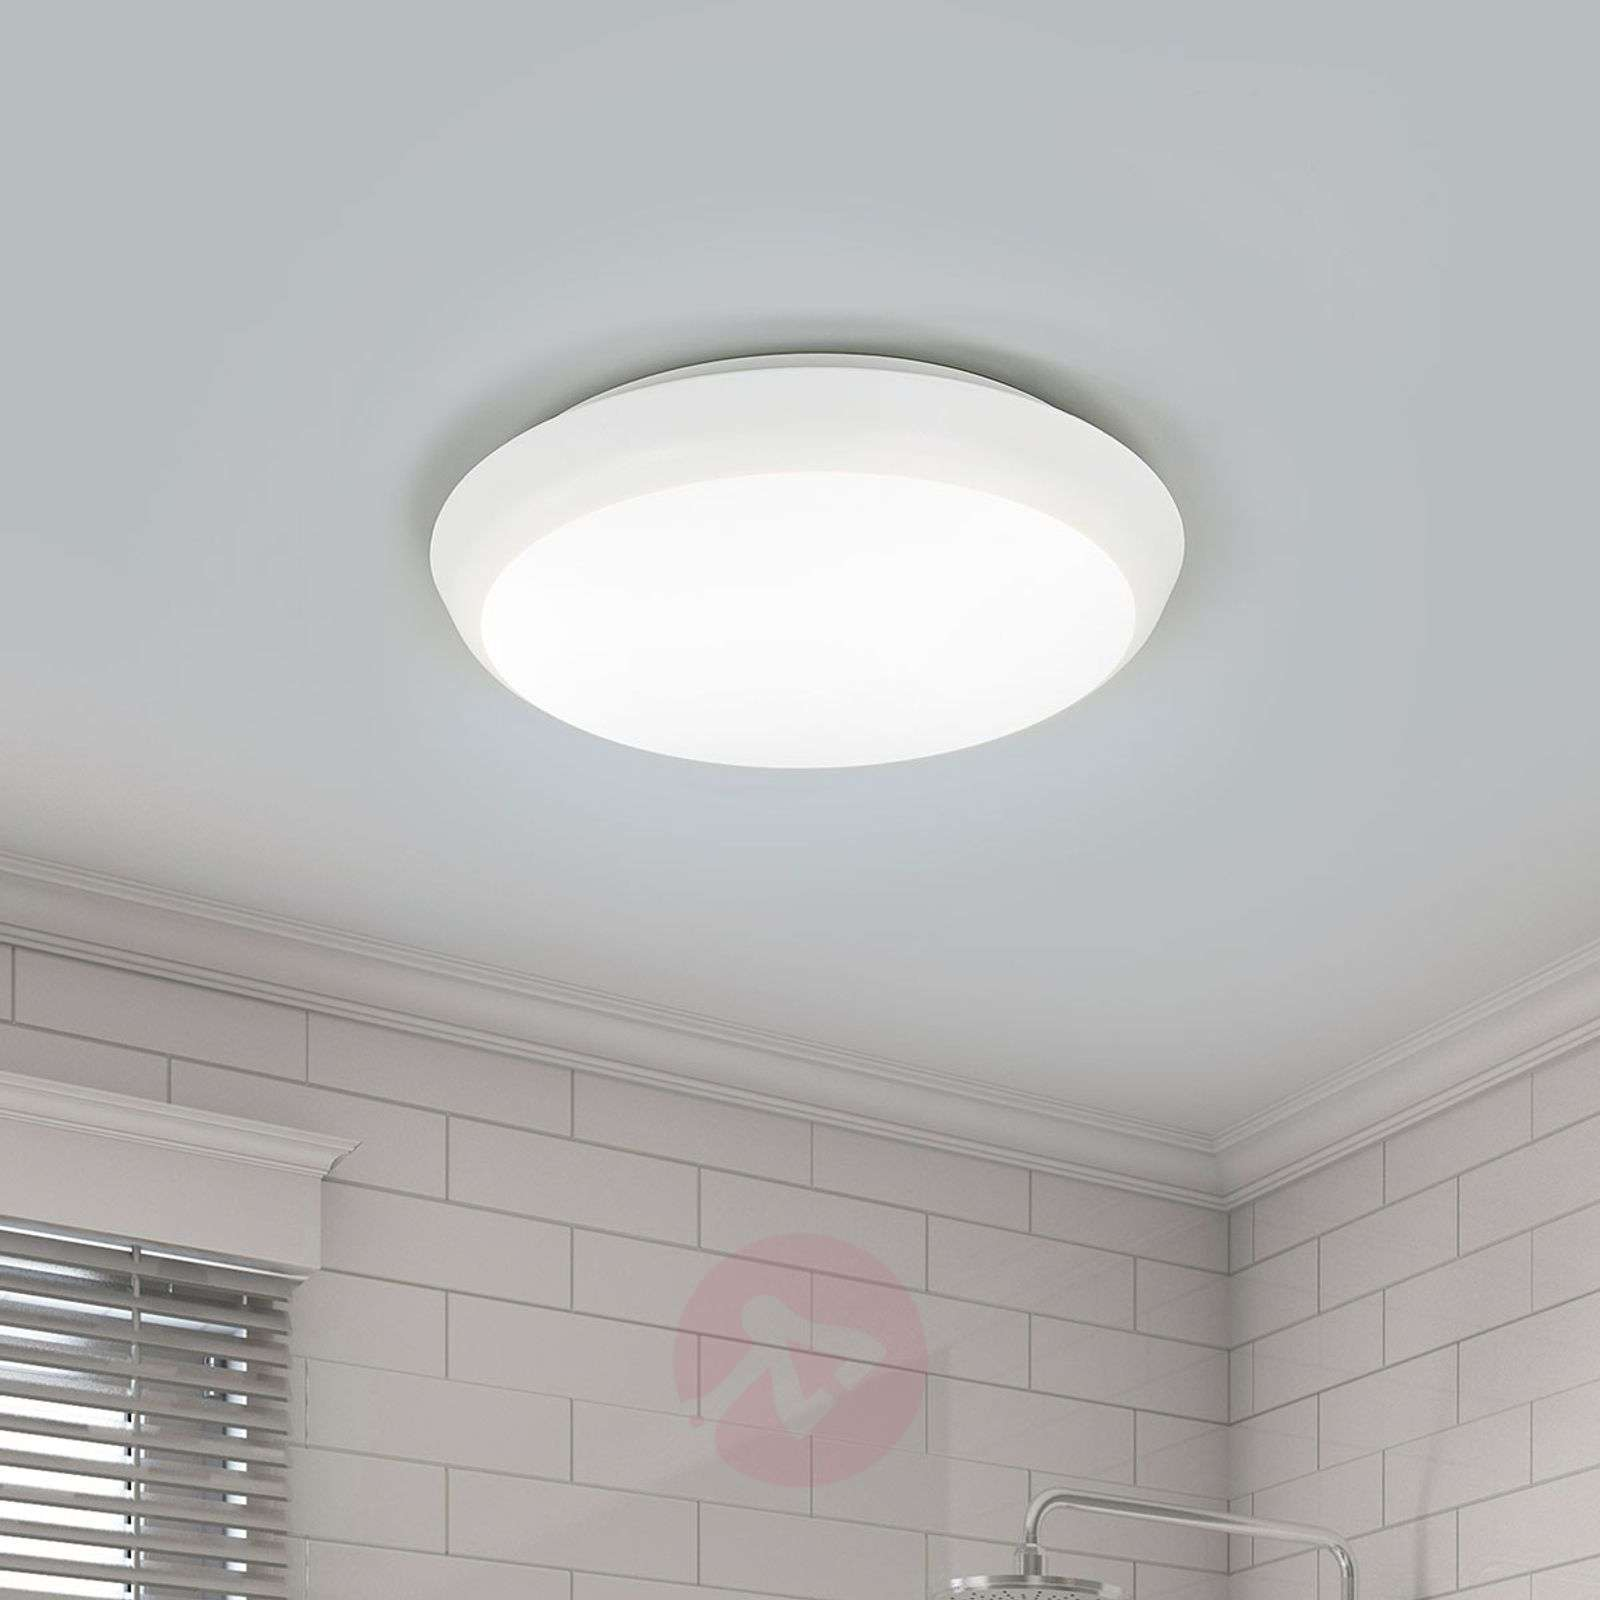 Round LED ceiling lamp Augustin, 20 cm-9967008-01